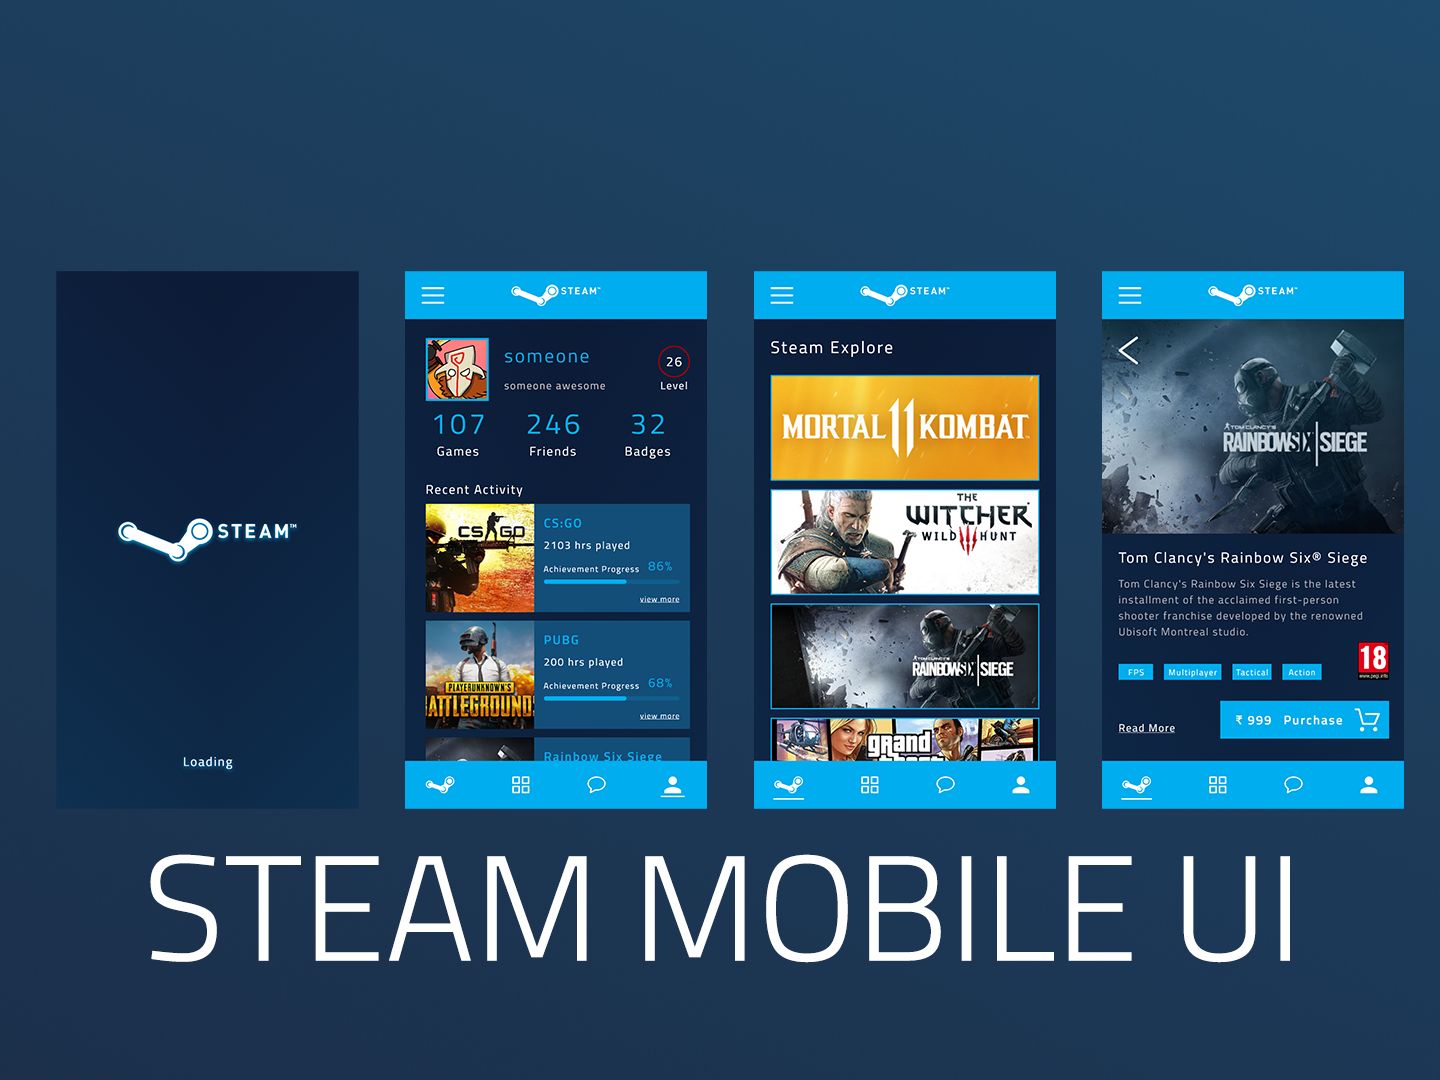 Steam App Concept by Siddhant on Dribbble